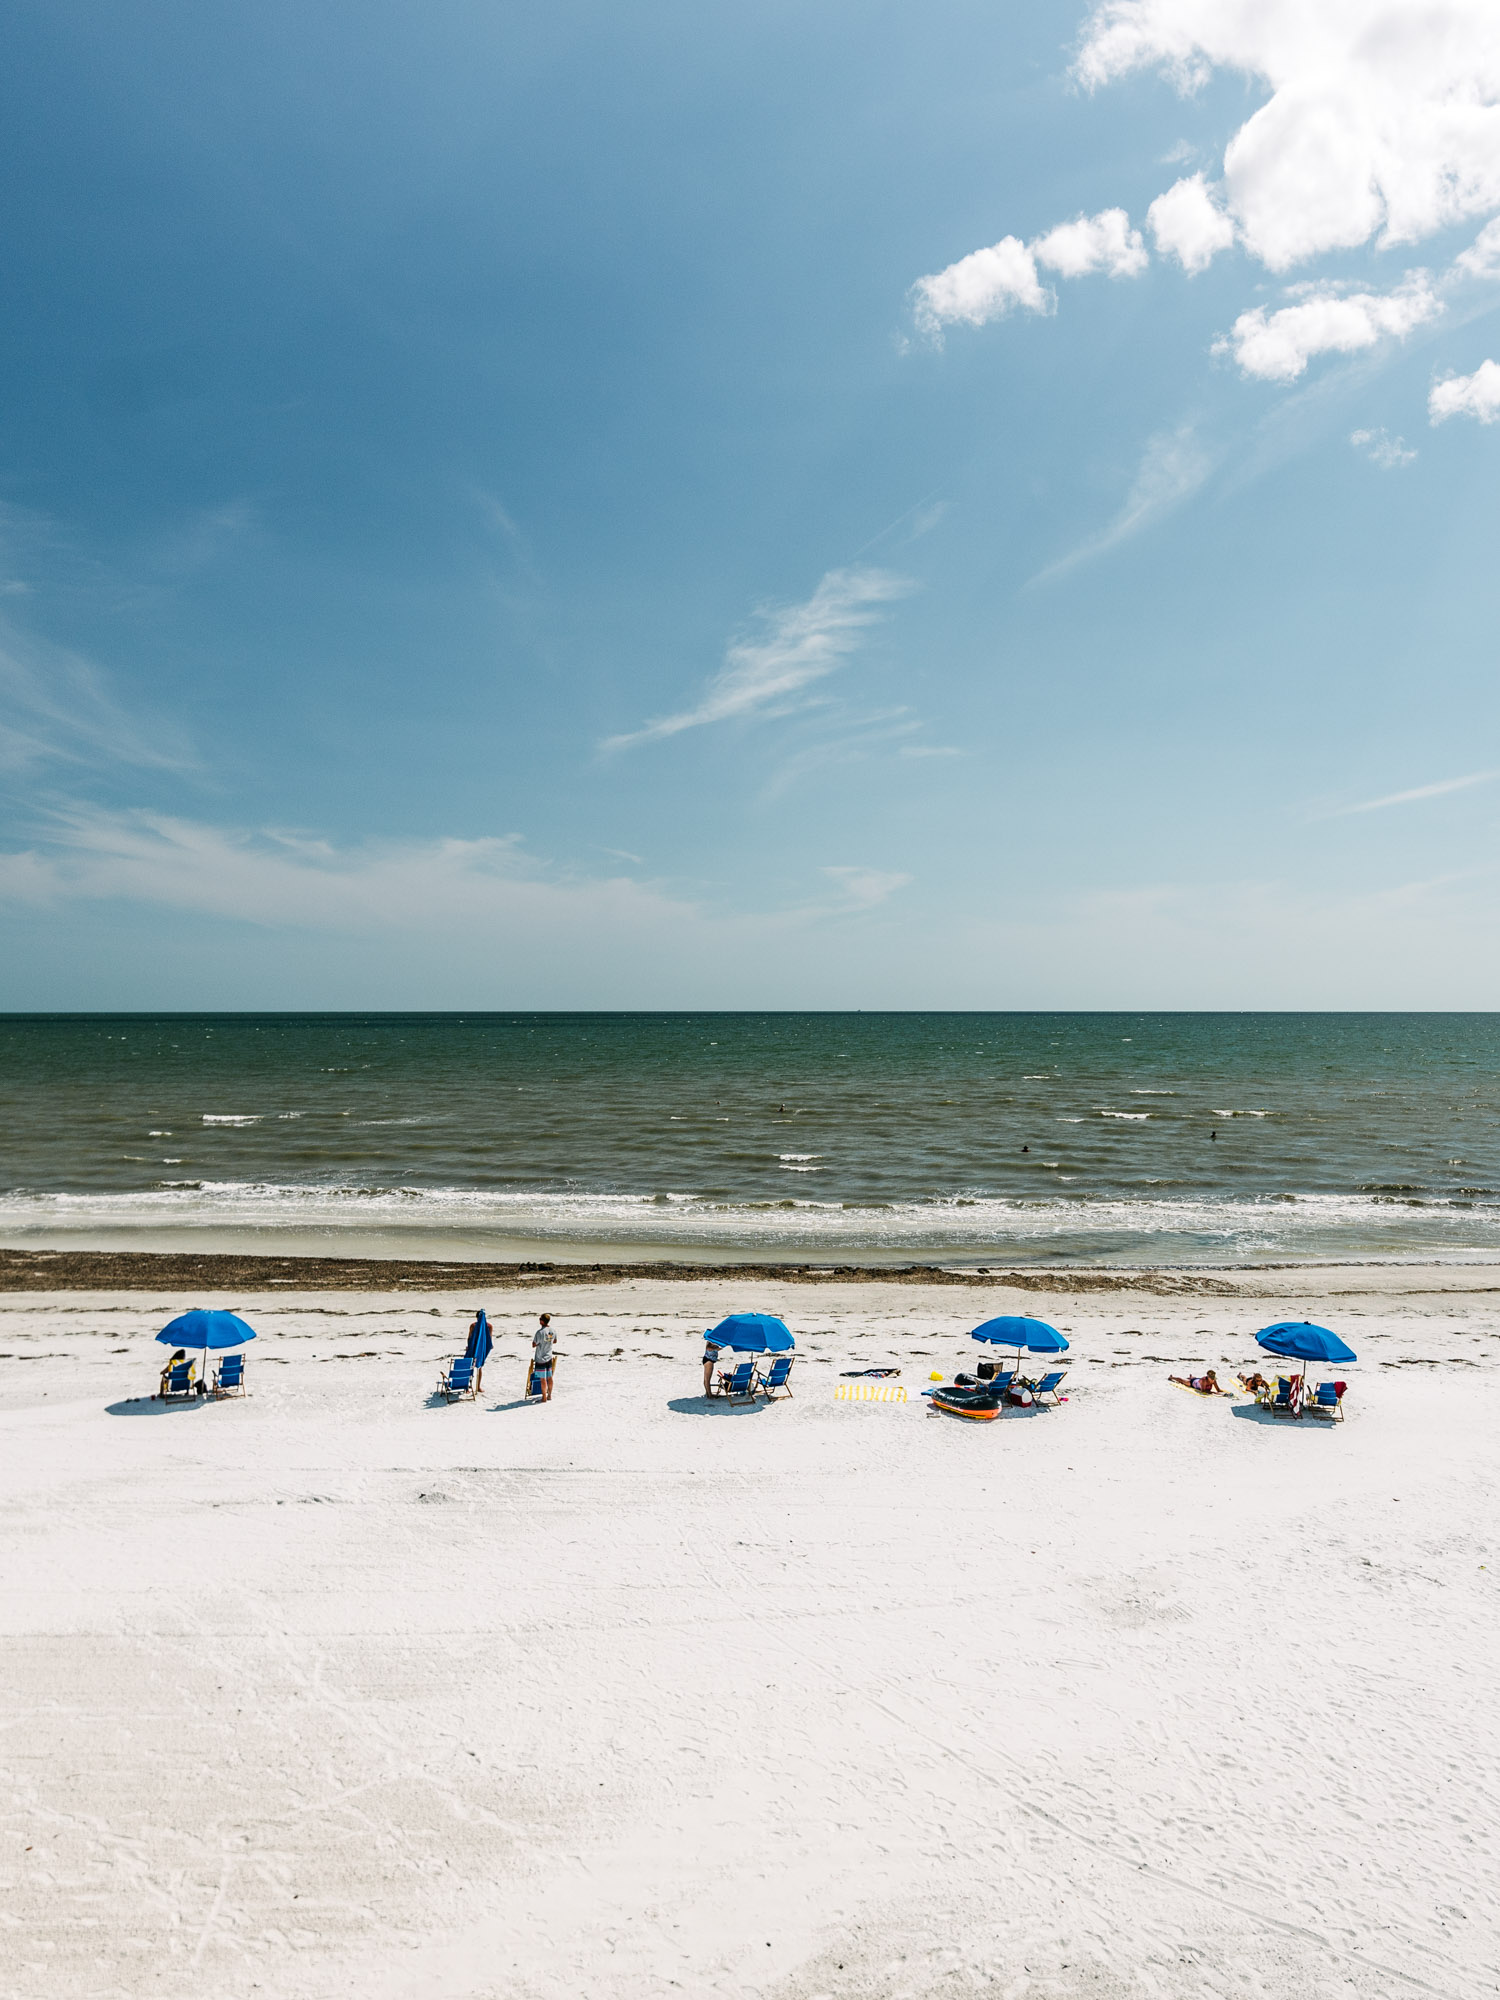 Jeff On The Road - The Beaches of Fort Myers and Sanibel Island - Sandpiper Gulf Resort